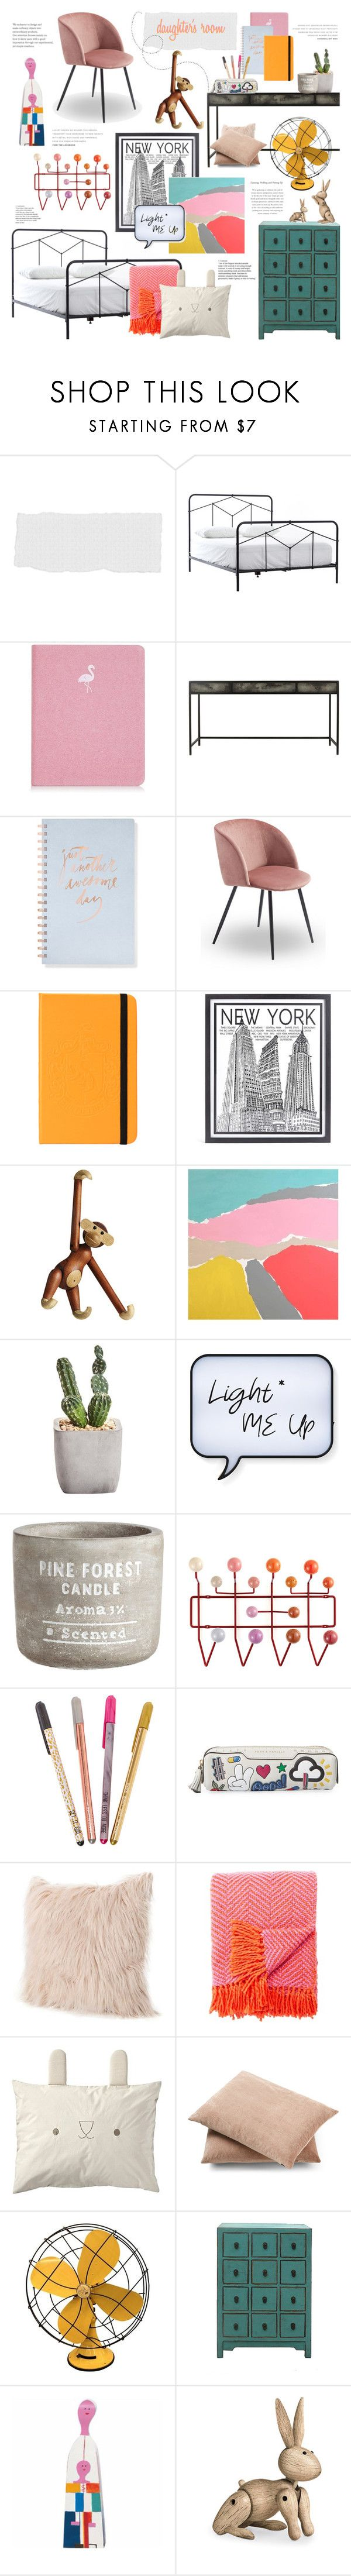 """""""Daughter's Room"""" by bklana ❤ liked on Polyvore featuring interior, interiors, interior design, home, home decor, interior decorating, Fringe, Stephenson, Kay Bojesen and Alan Fears"""